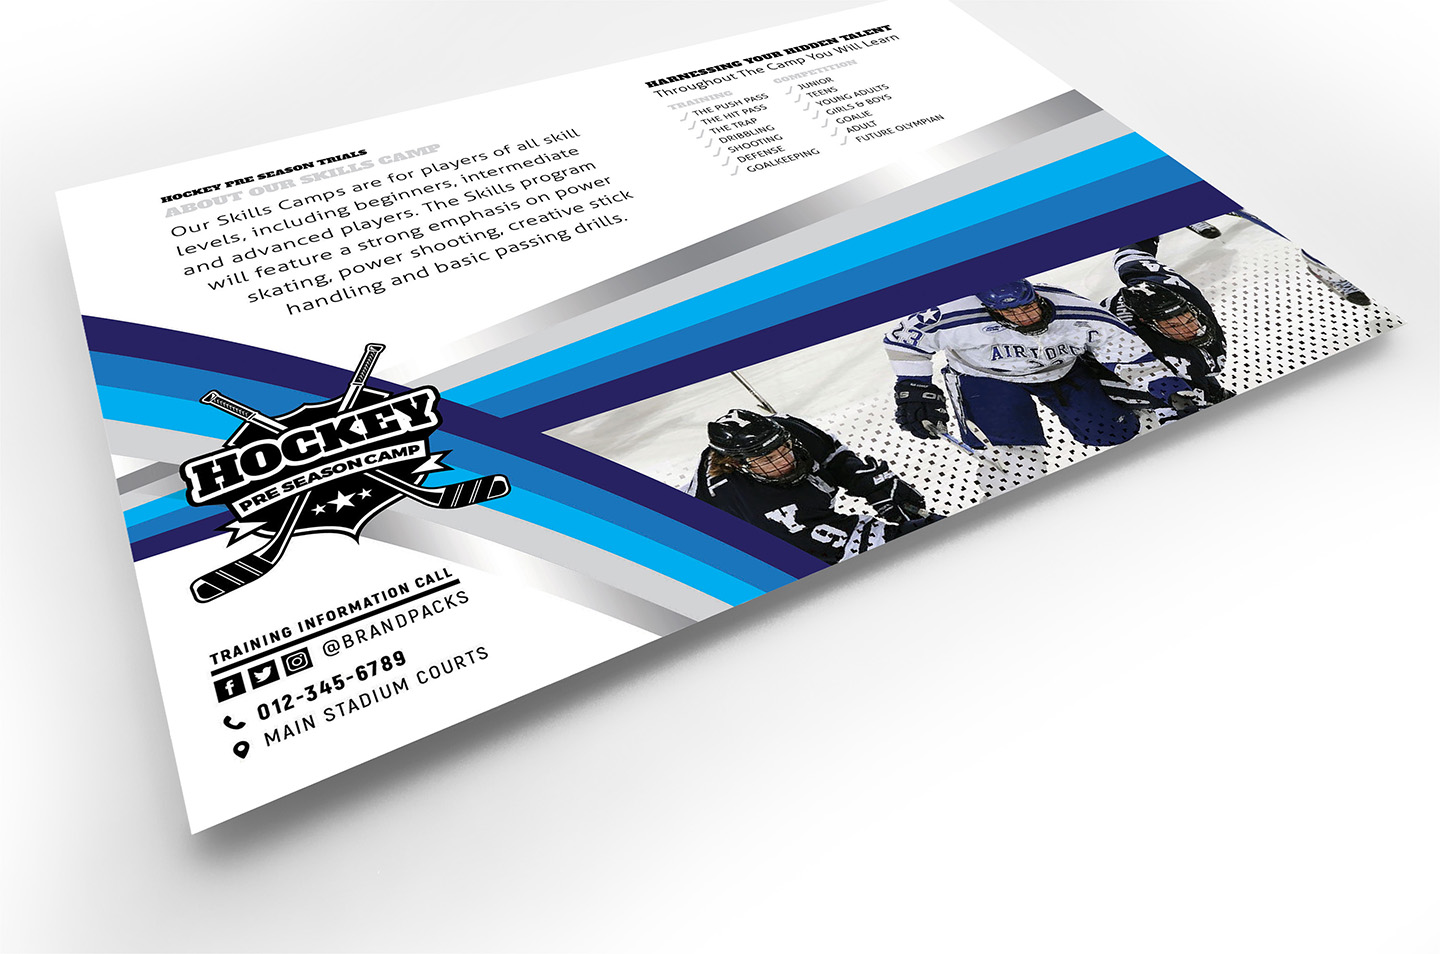 Hockey Club Flyer Template example image 4